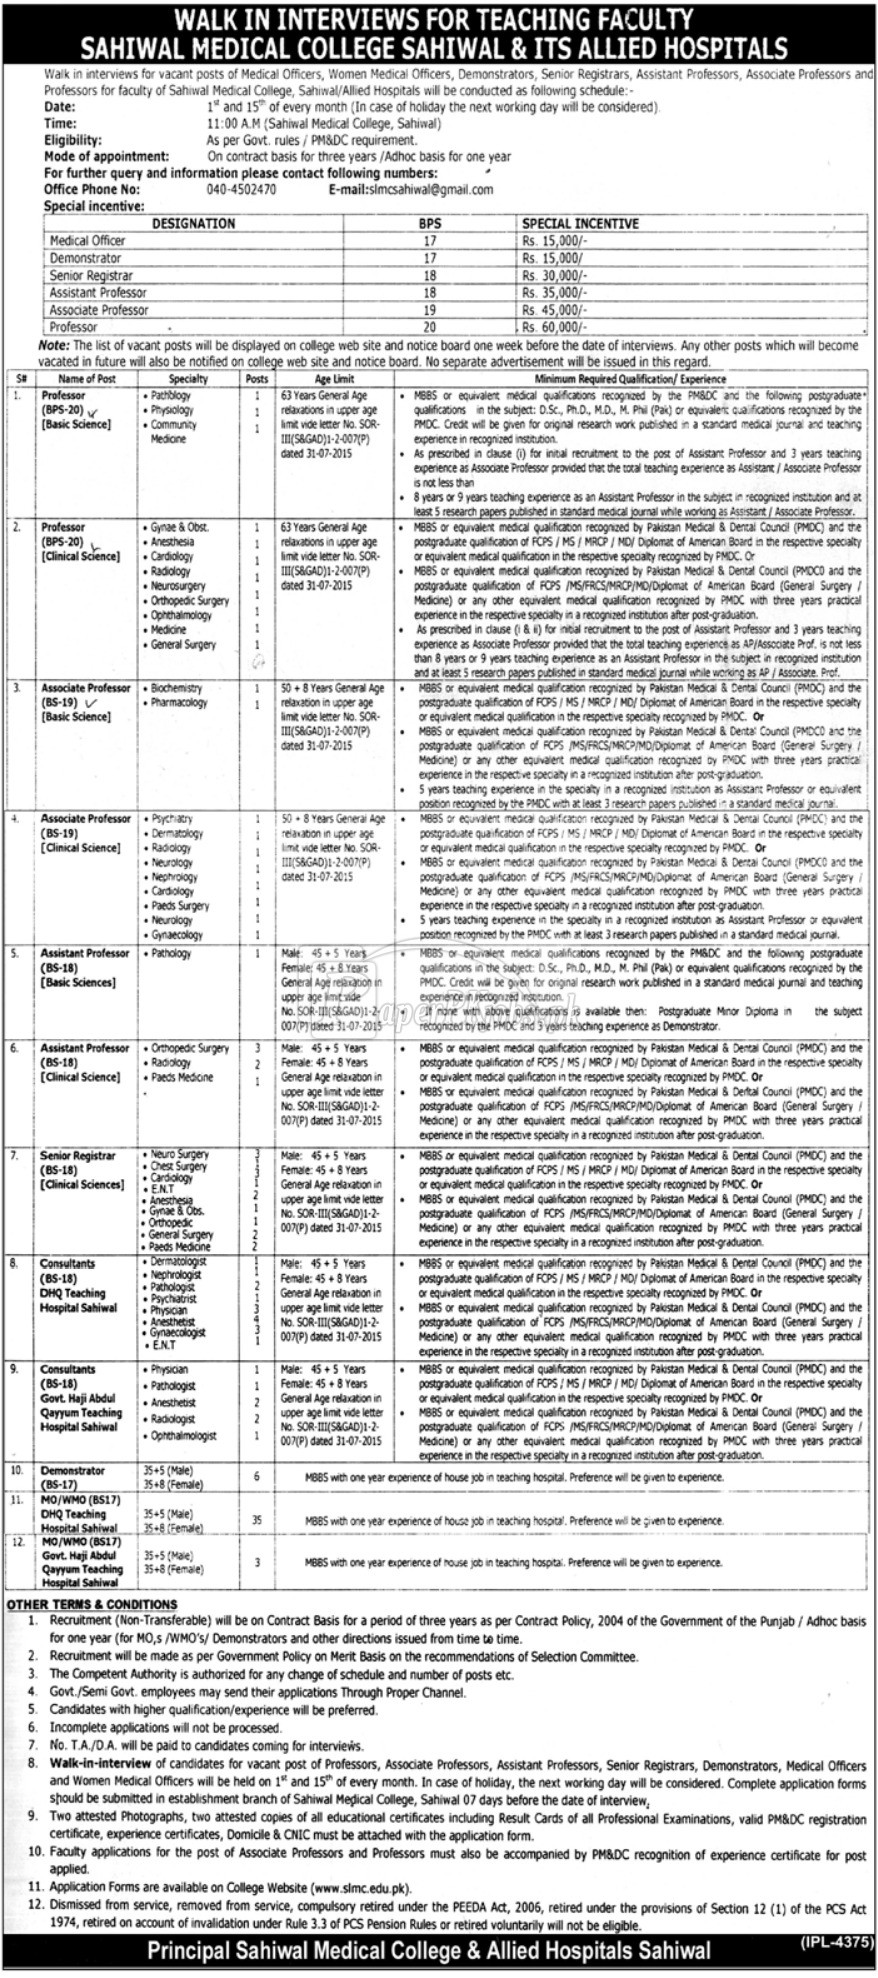 Sahiwal Medical College & Allied Hospitals Sahiwal Jobs 2018